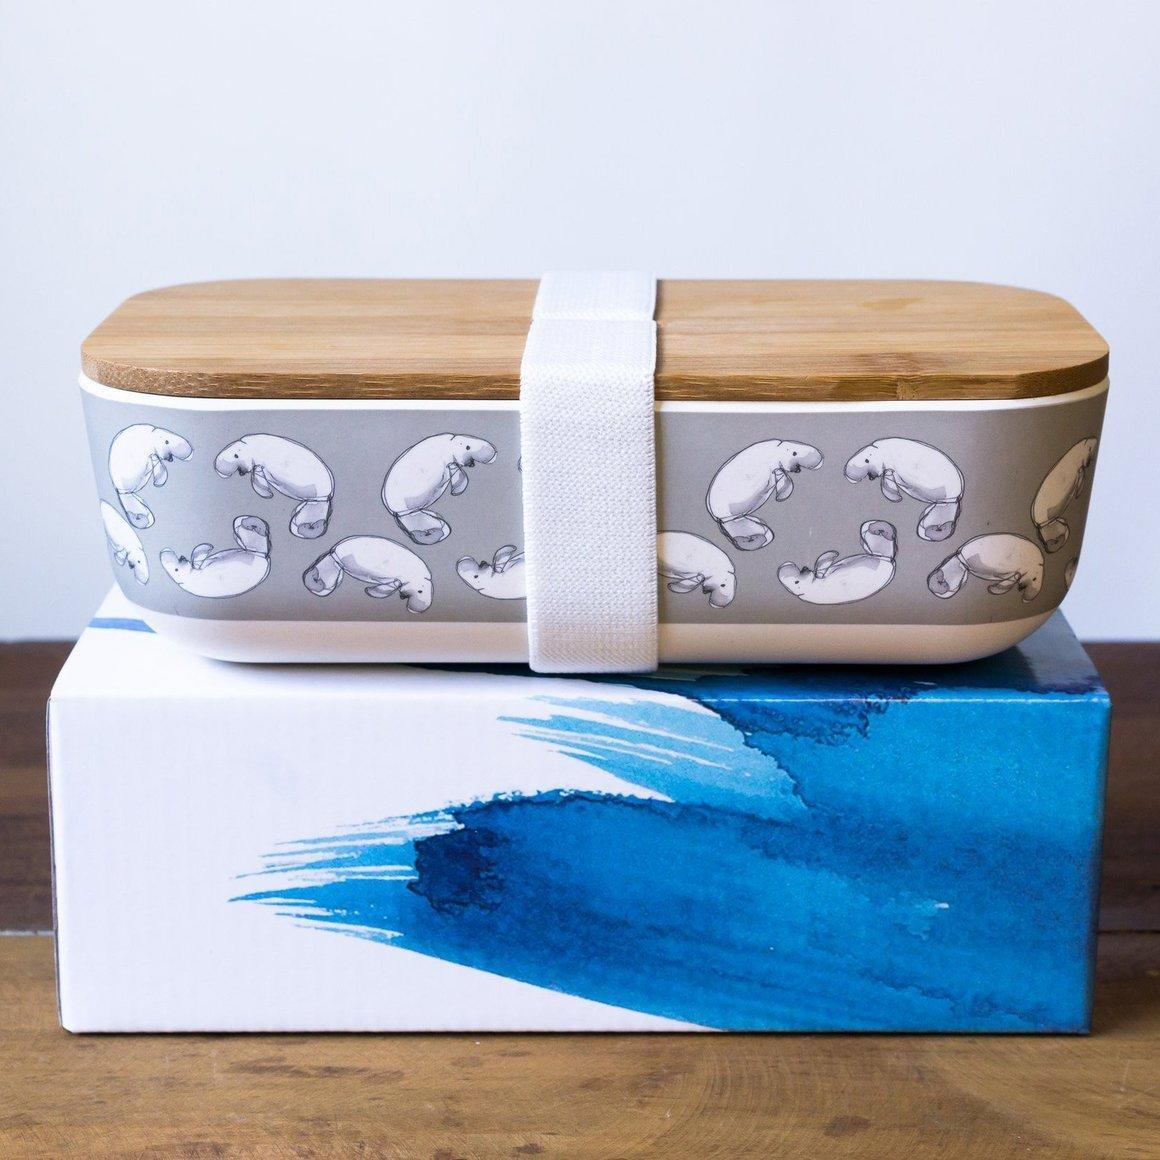 Bamboo lunch box with Dugong design | Trada Marketplace